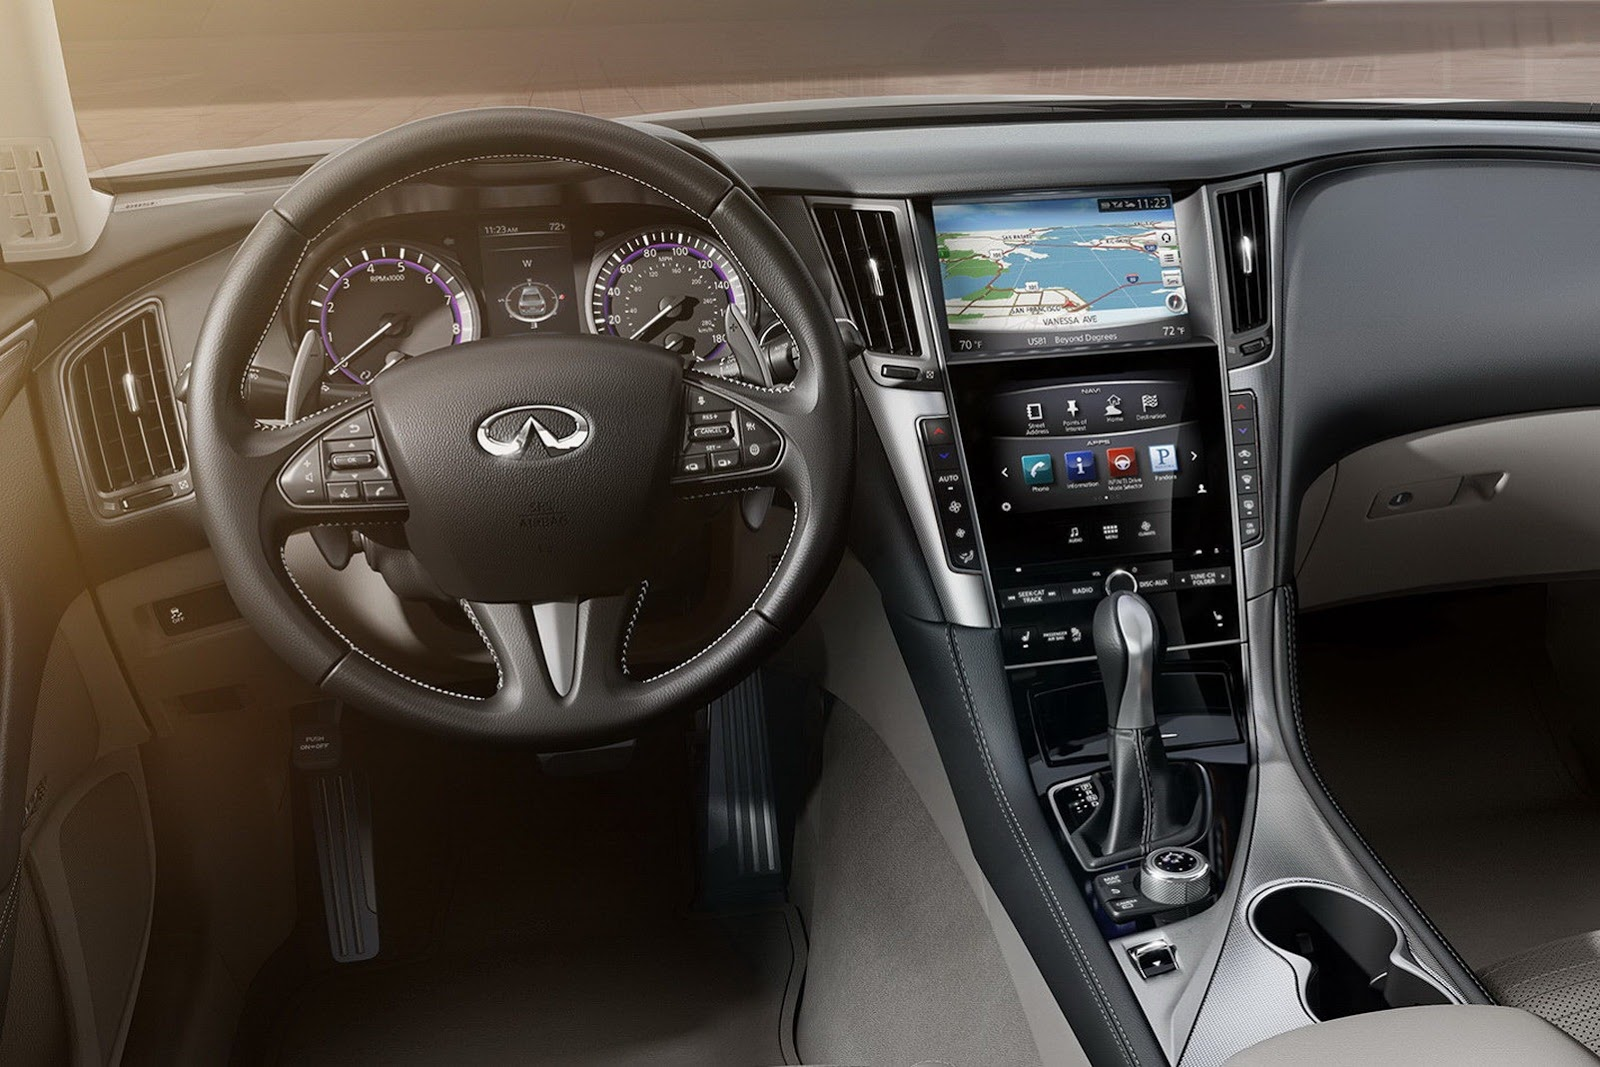 2014 infiniti q50 looks elegant the news articles reviews comments prices of cars and. Black Bedroom Furniture Sets. Home Design Ideas